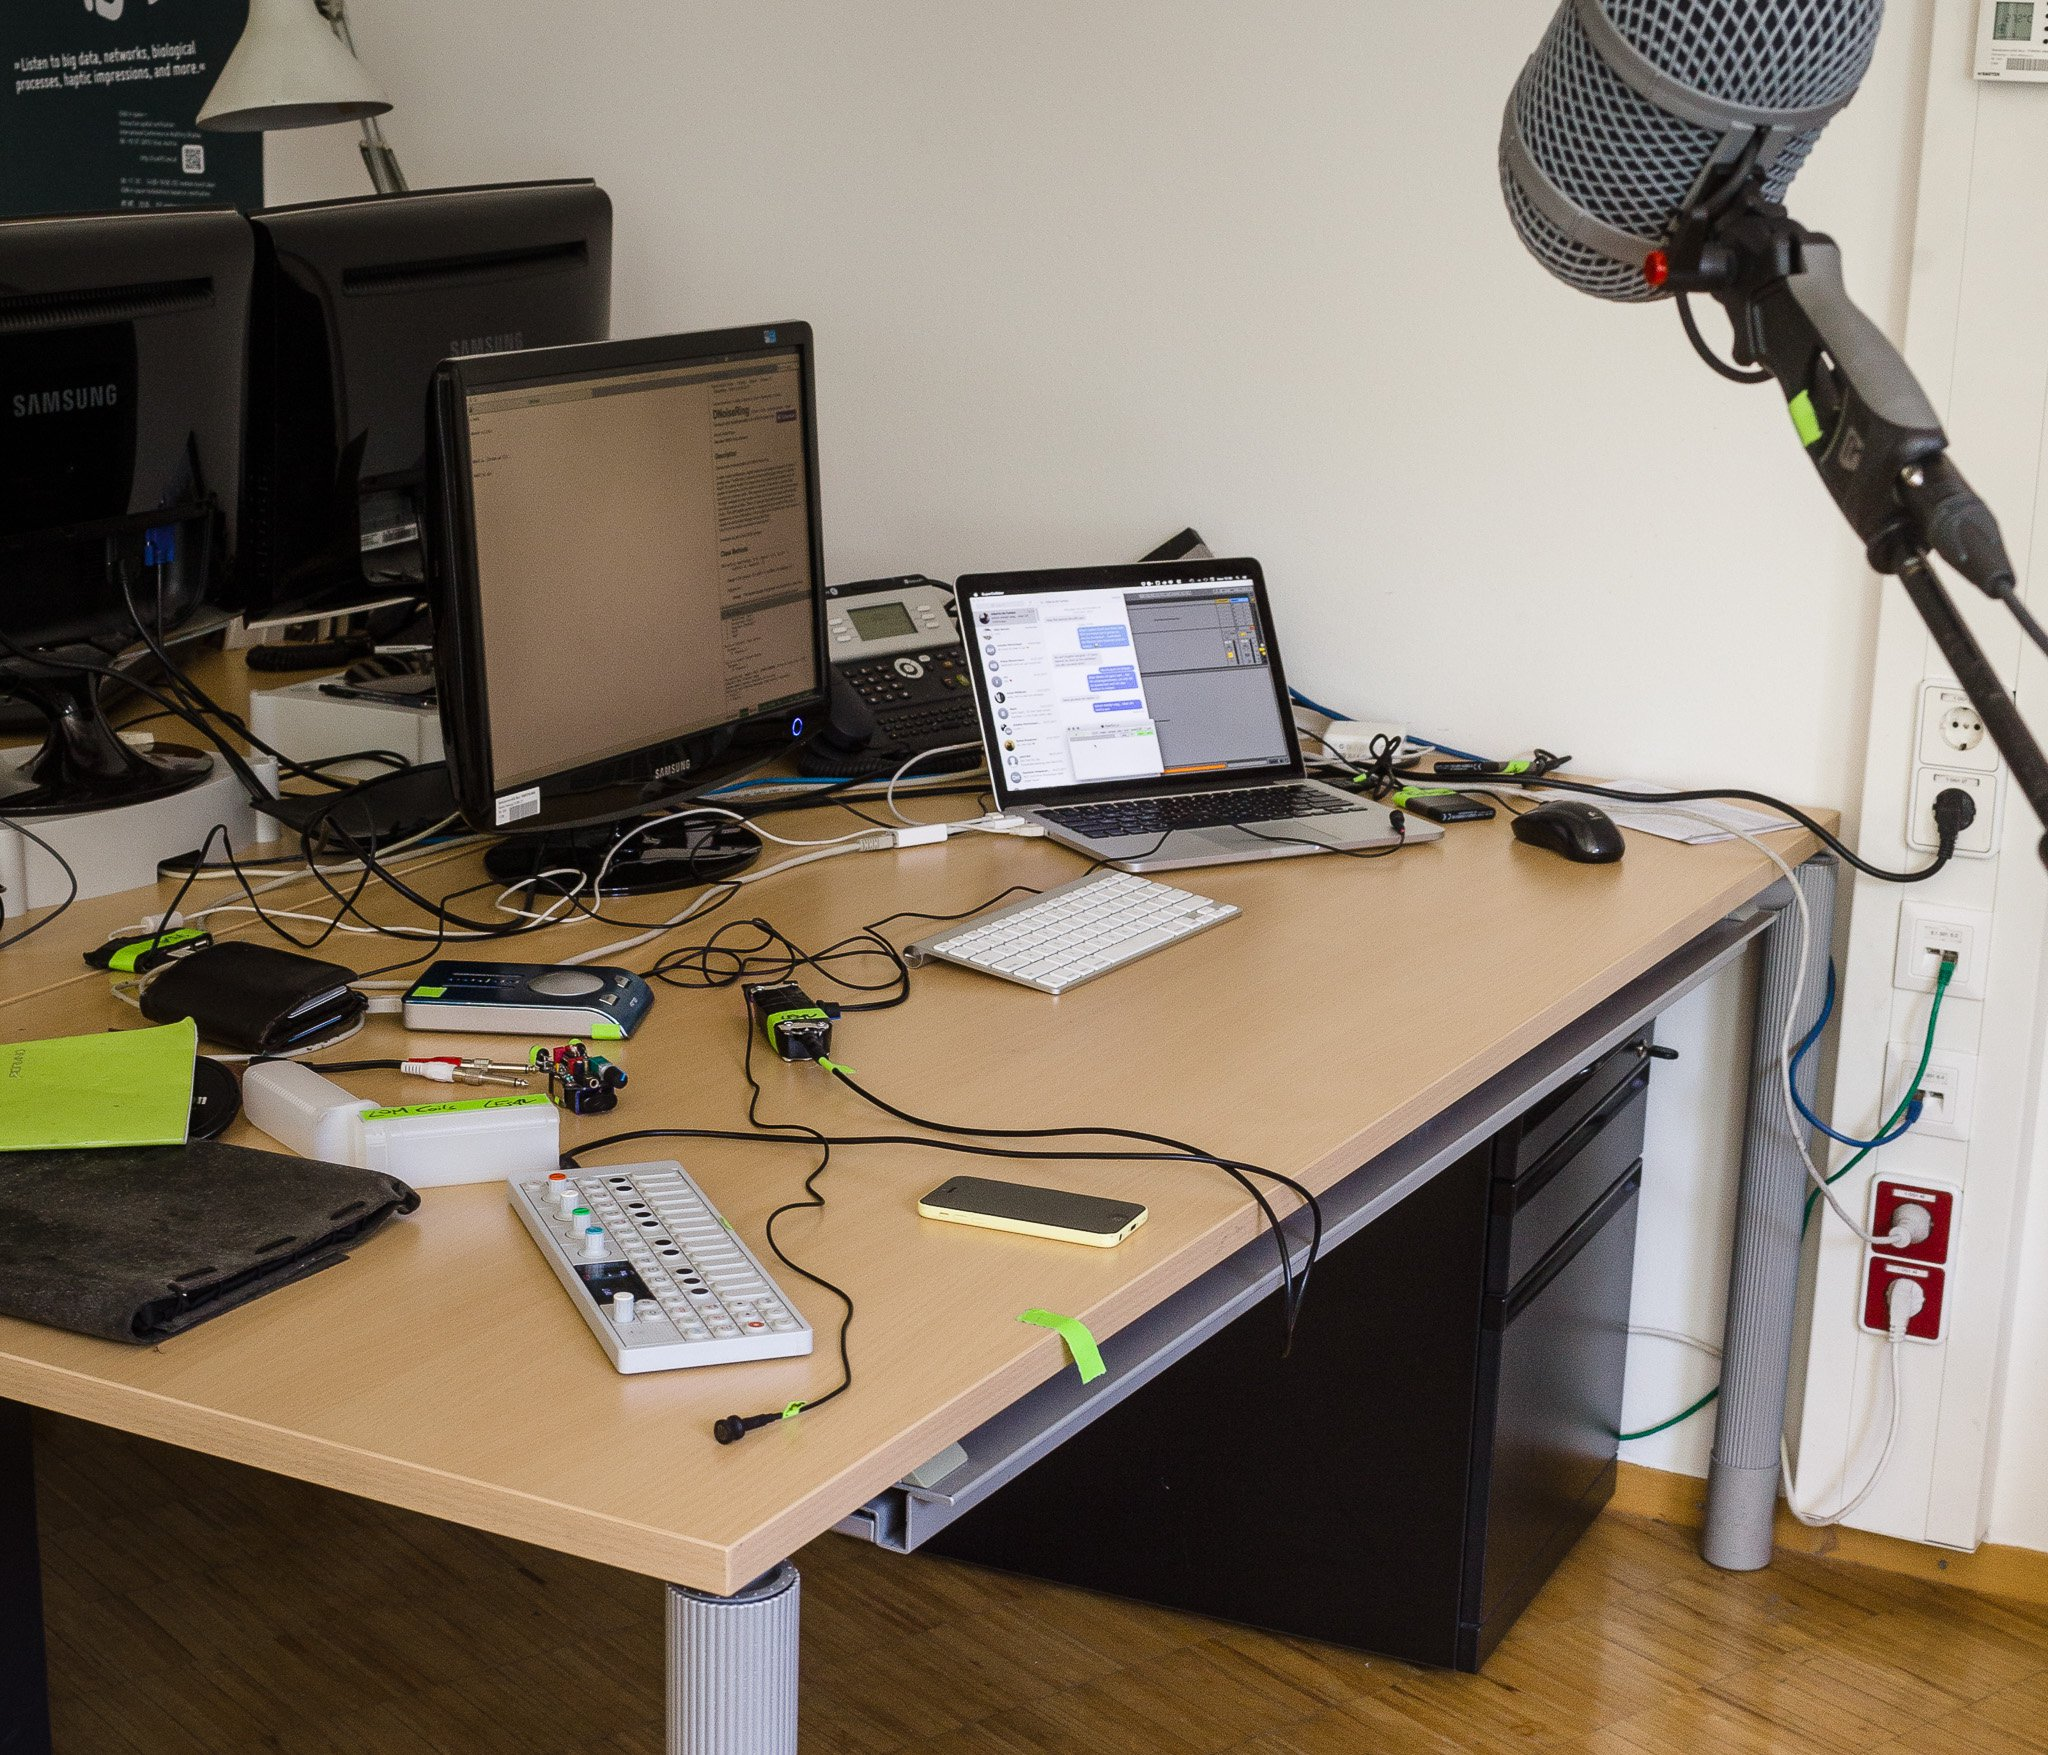 My desk where I did my first livecoding rehearsal.